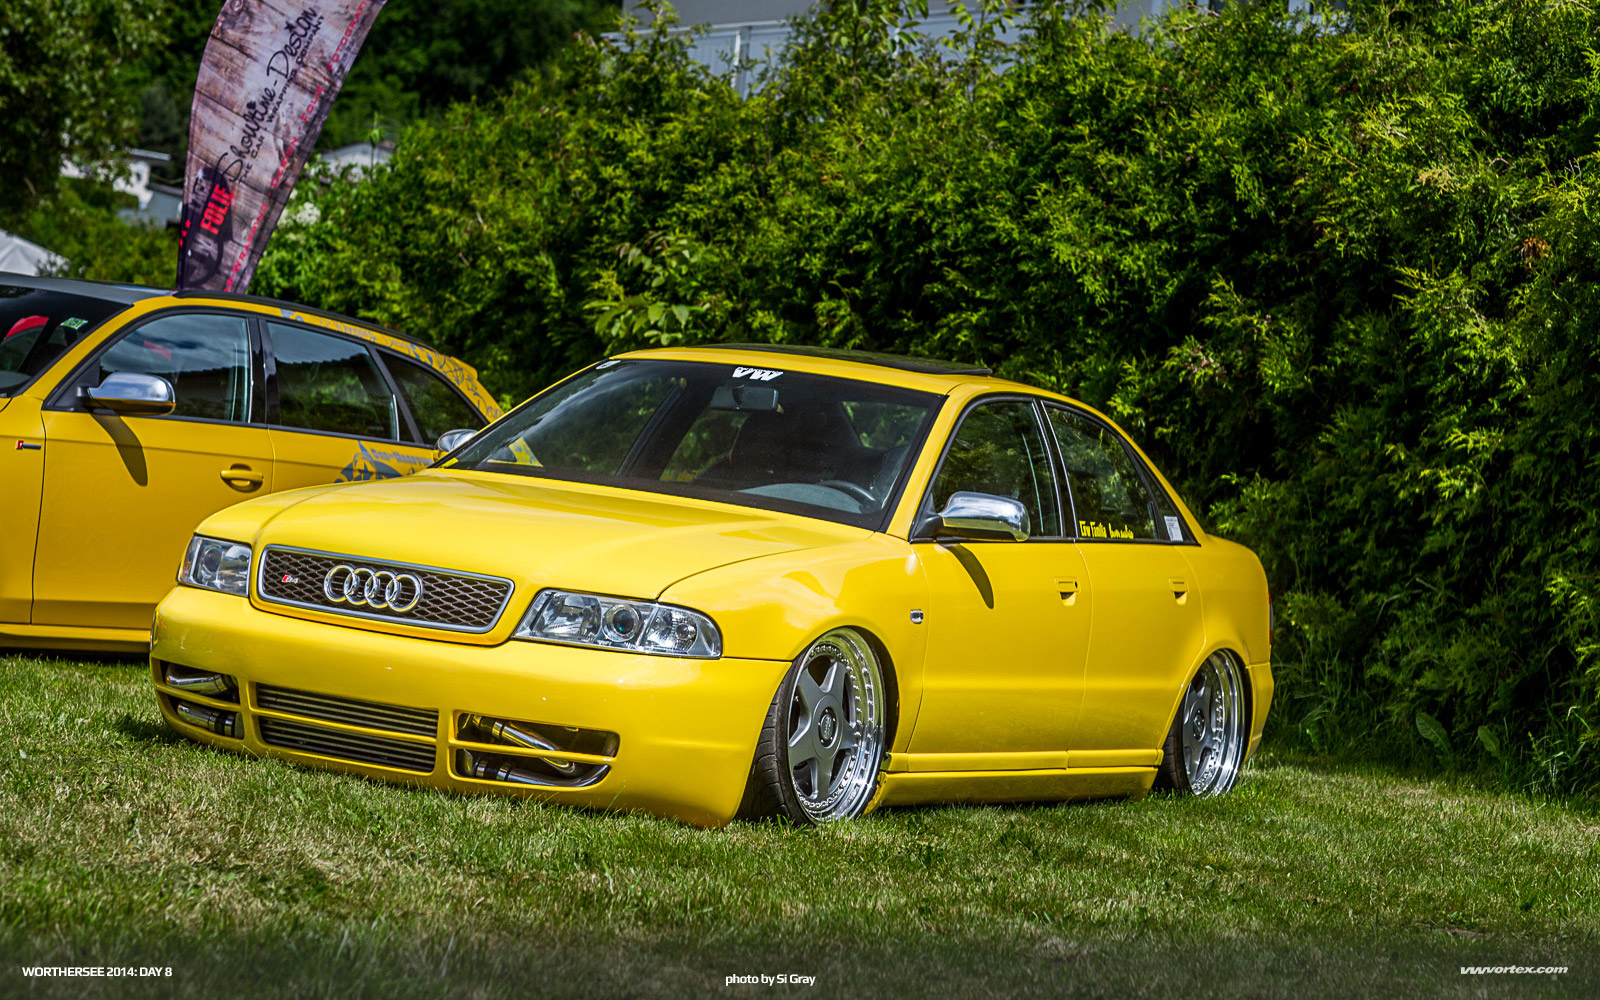 2014-Worthersee-Day-8-Si-Gray-1097